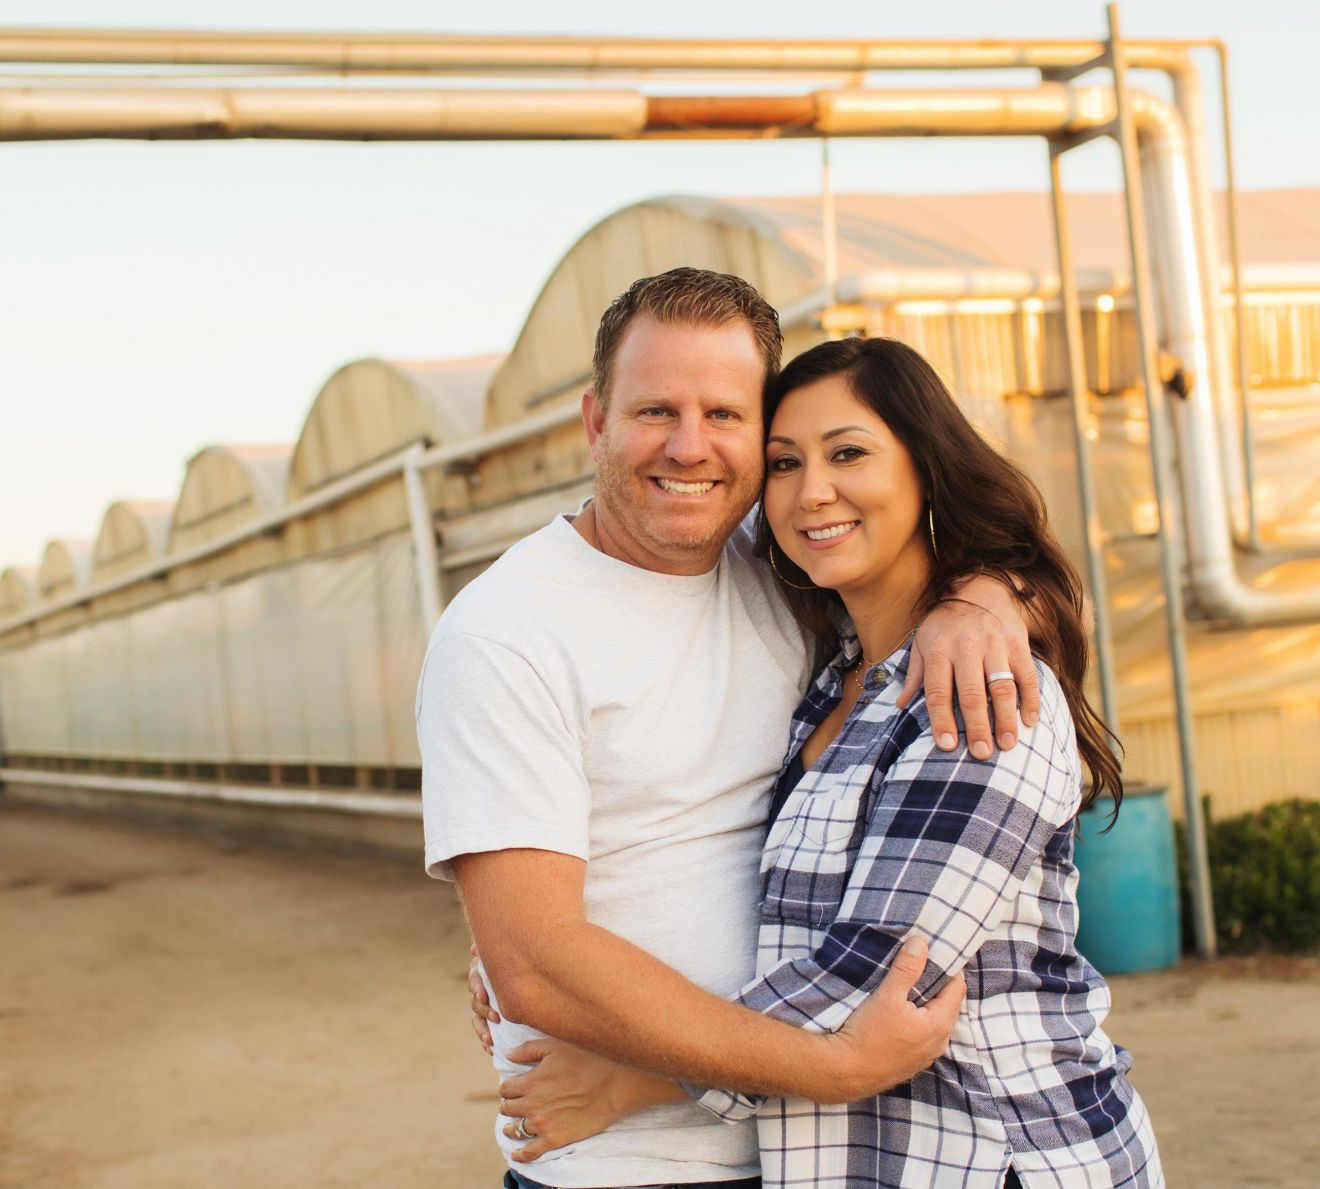 Cindy and David Van Wingerden, owners of CVW Organic Farms